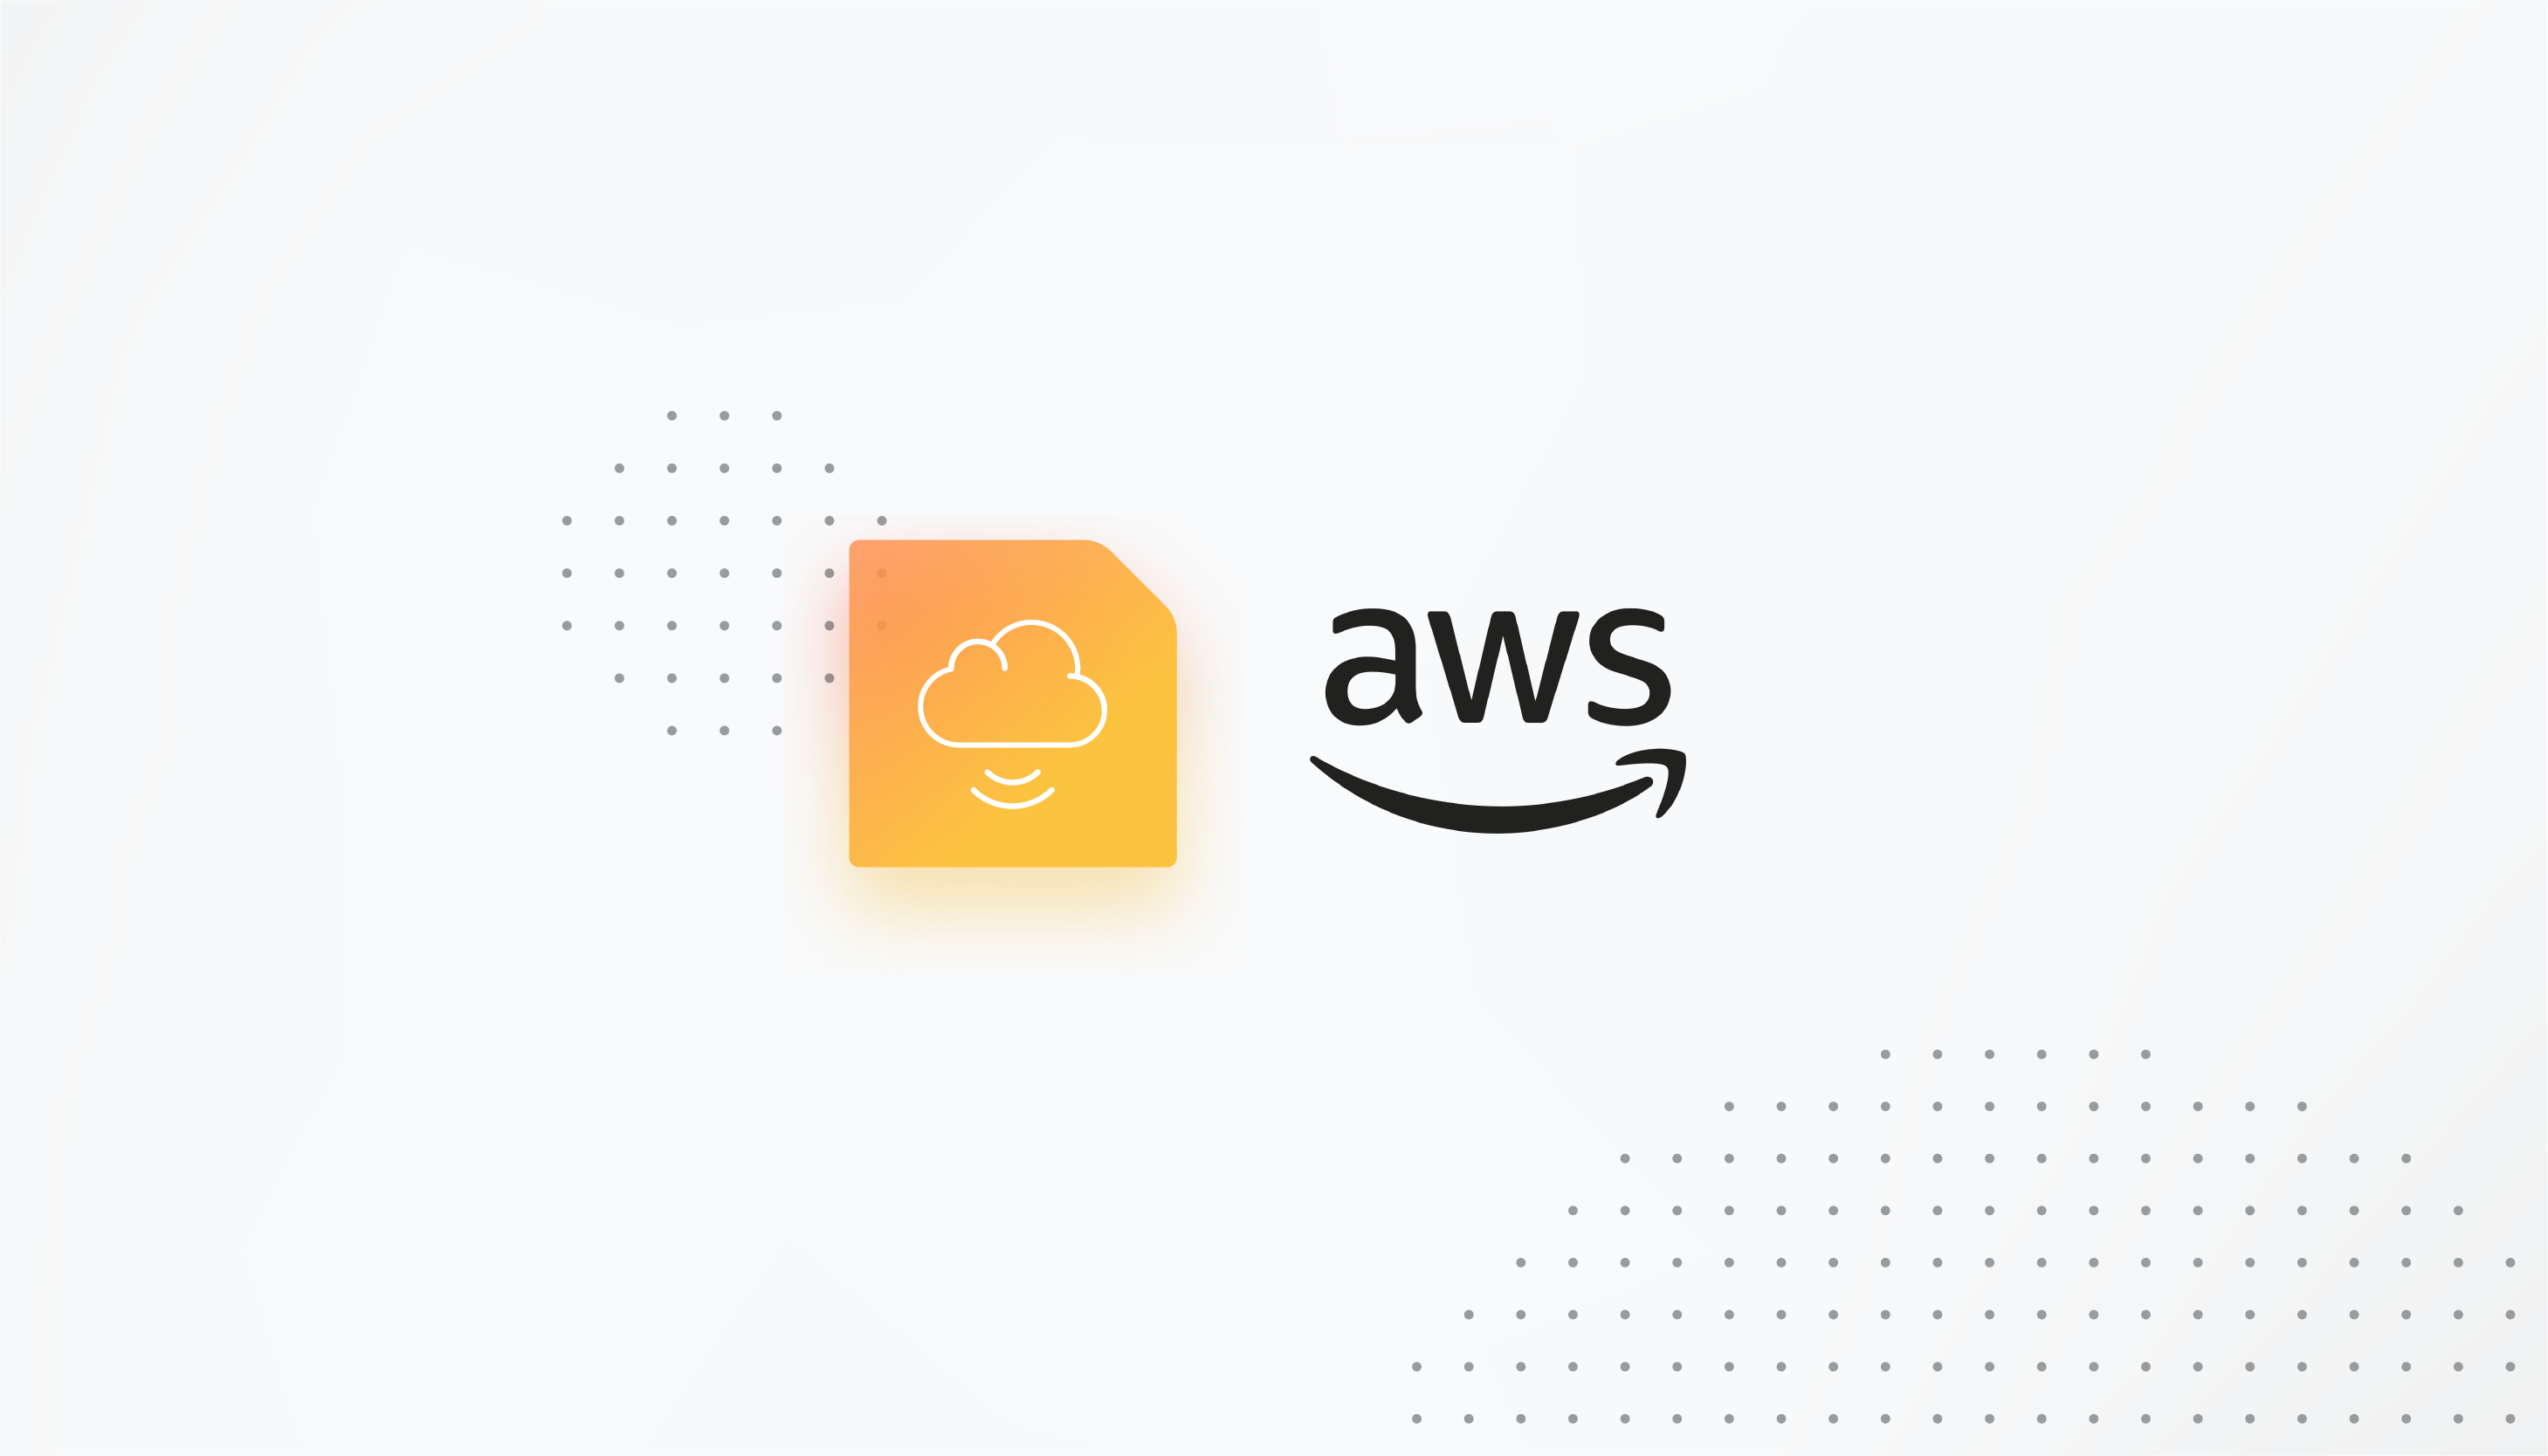 Integration Guide Thumbnails_AWS-feature-02-3